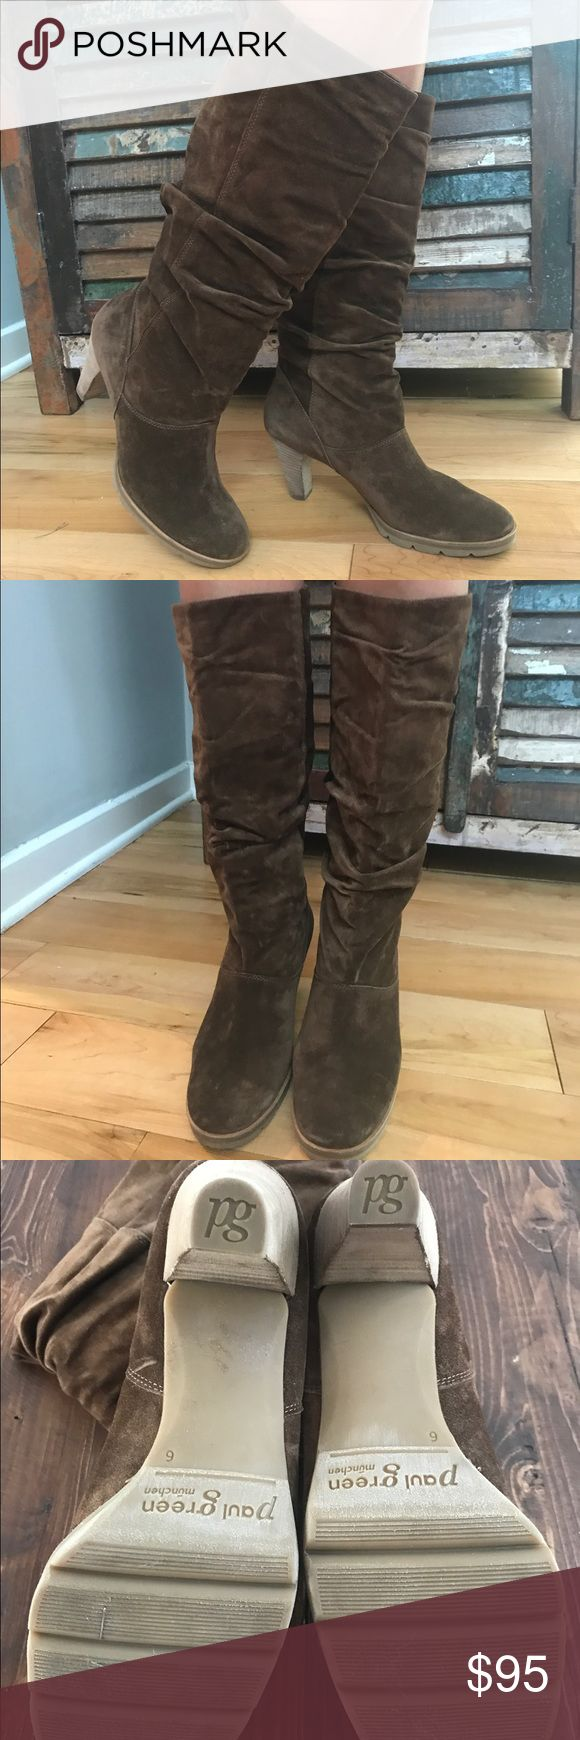 """Like new Paul Green brown suede boots Beautiful boots by Paul Green!! Worn only once, see photos no wear marks or tears about a 2"""" heel marked as an 8.5 but is a true size 8 Paul Green Shoes Heeled Boots"""